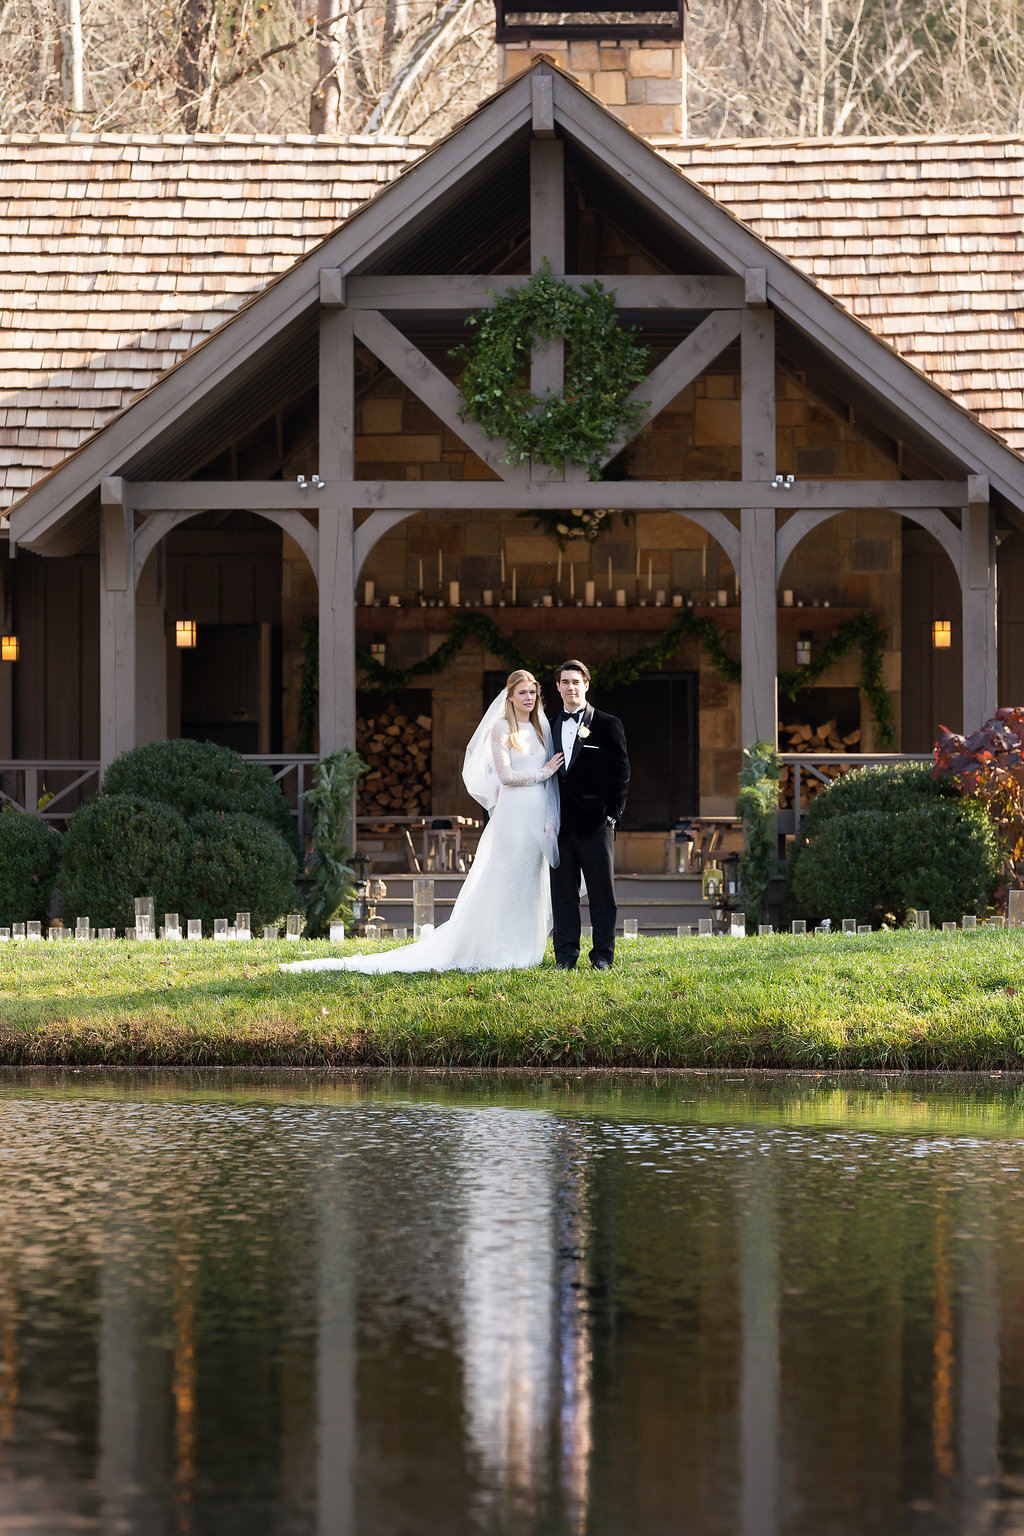 December Wedding at Blackberry Farm with all white and greenery florals // Wedding Ceremony at Yallerhammer Pavillion // Tennessee Floral Design